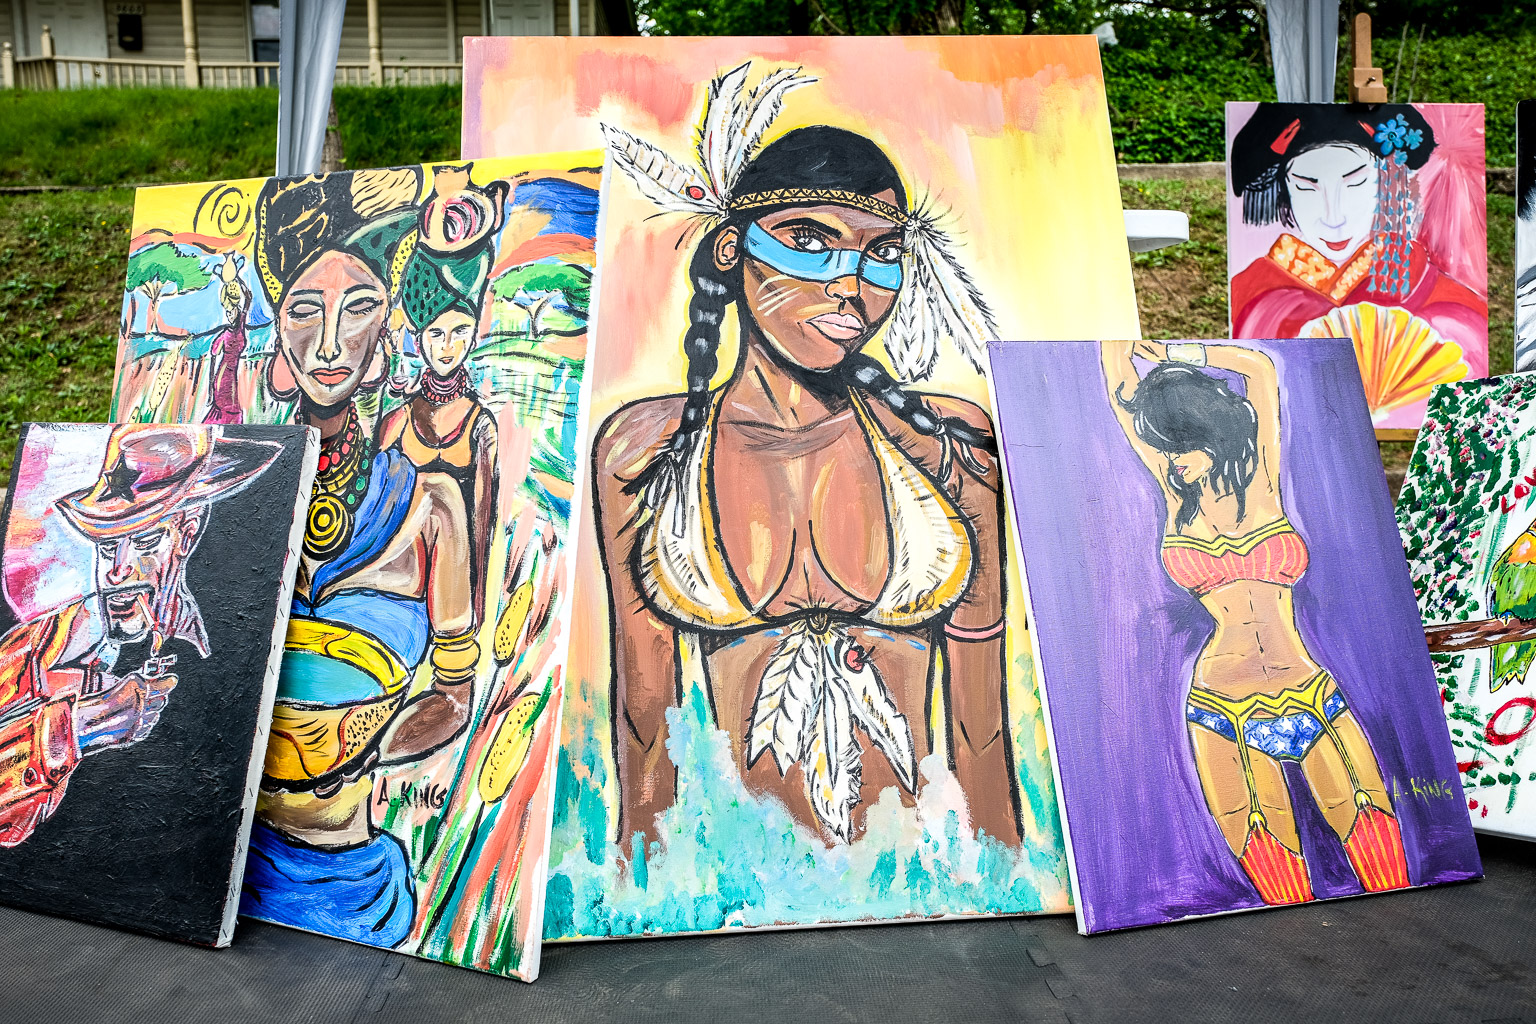 More of King's work from the Mount Rainier Day festival. Again, some of these may still be available for purchase.